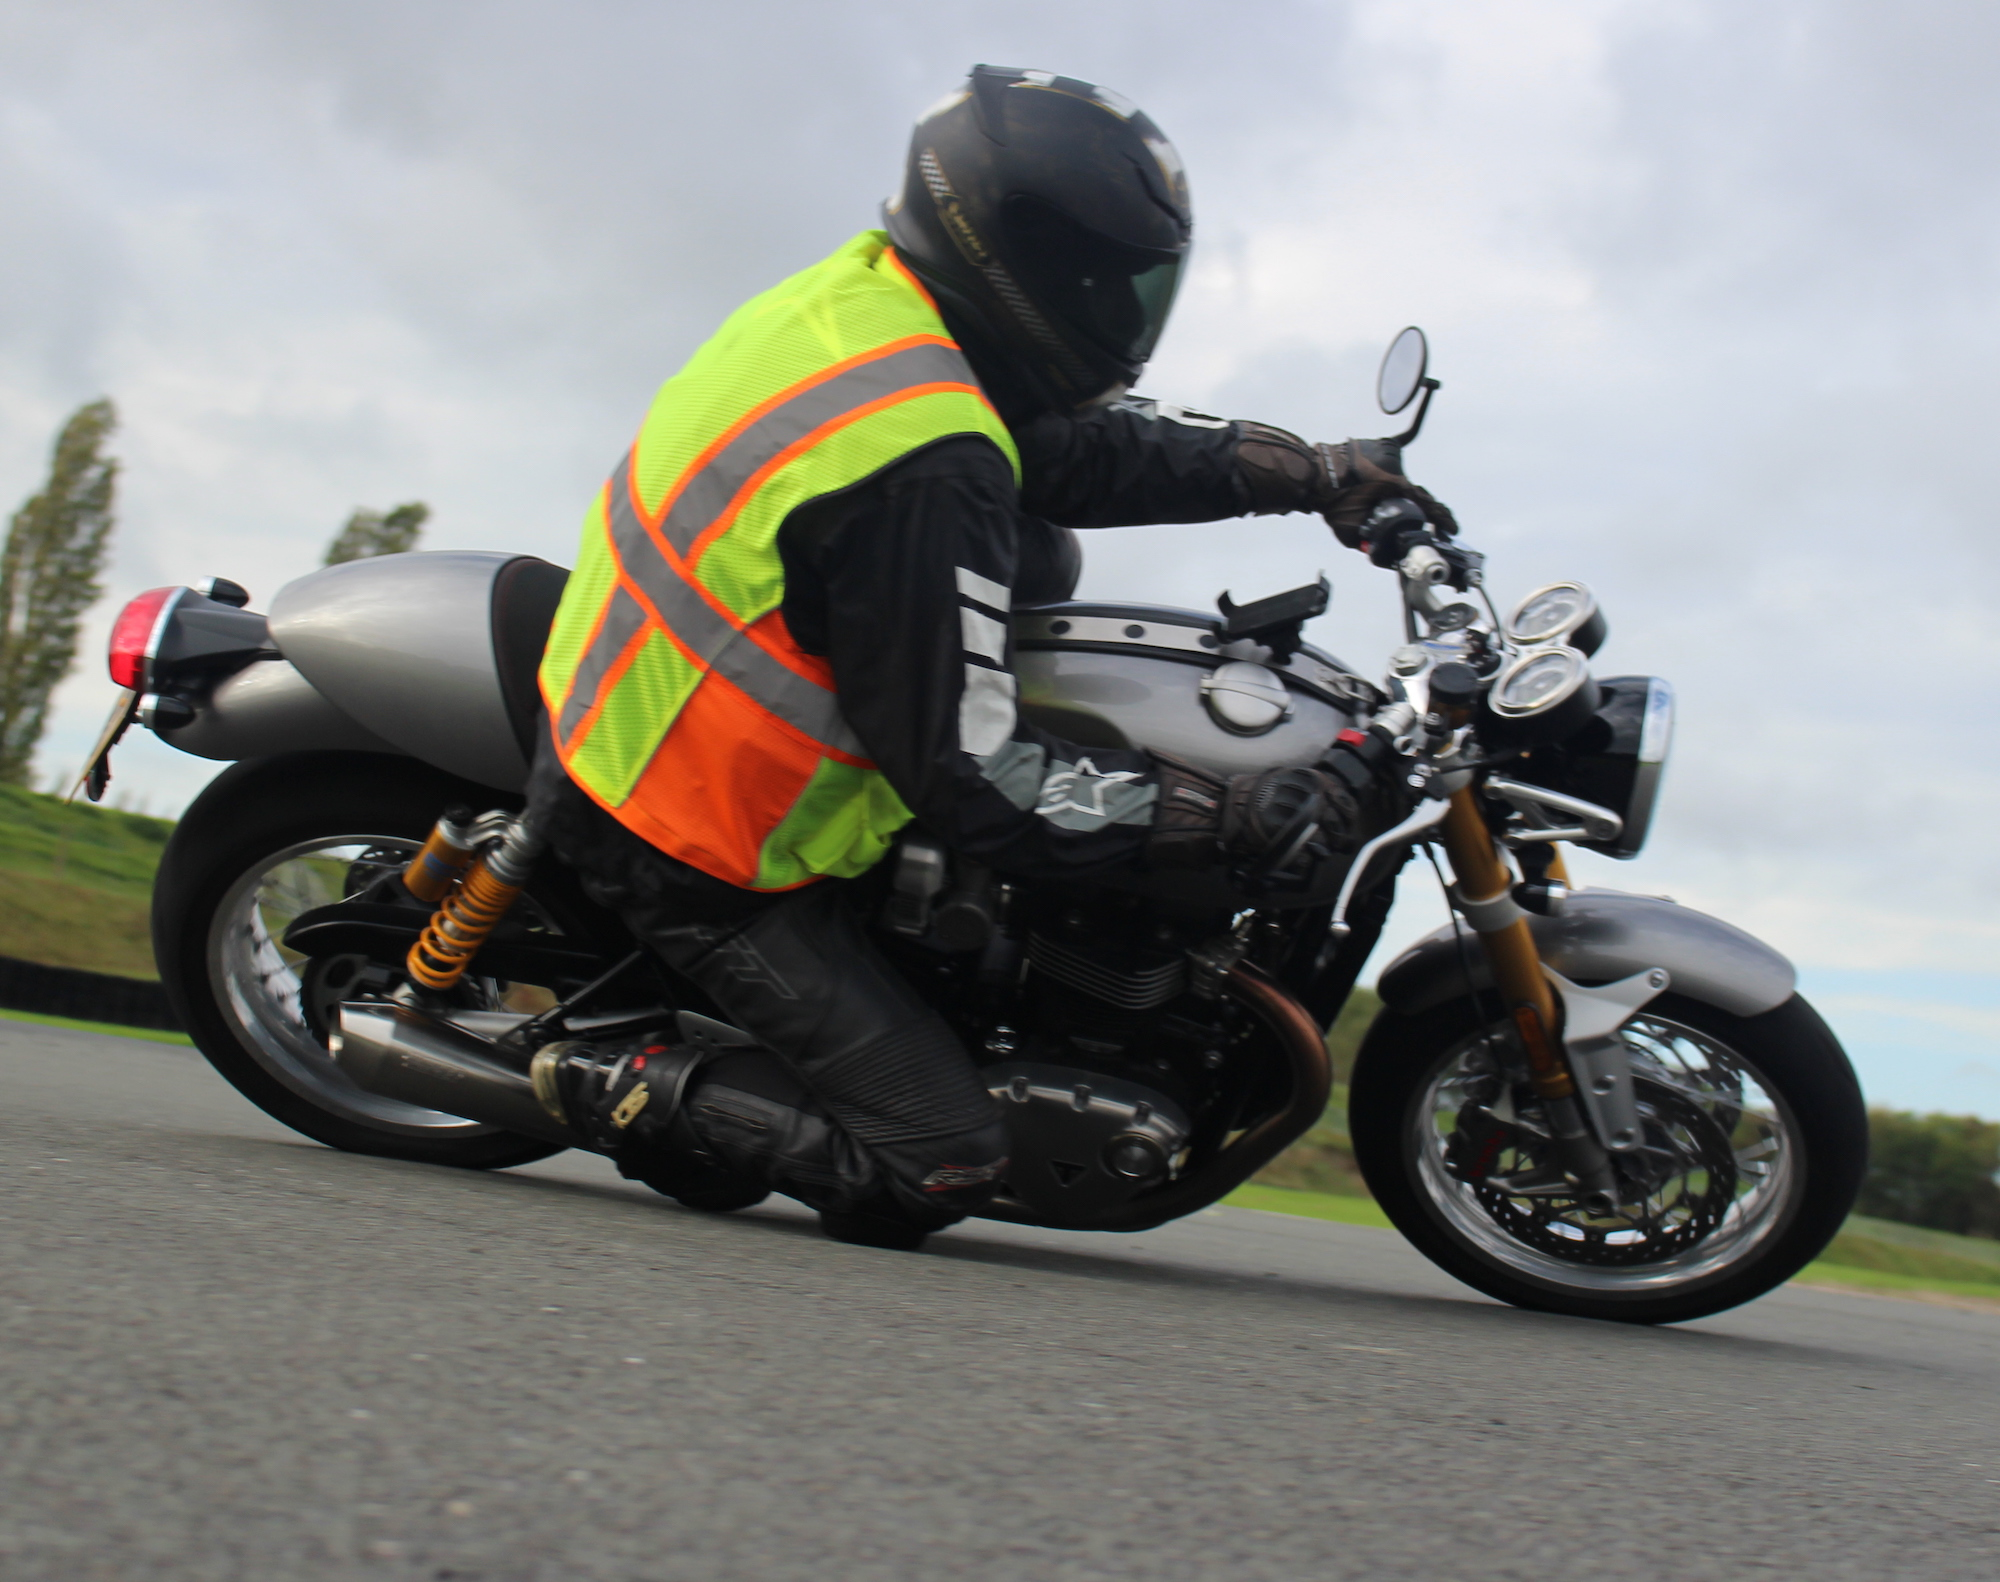 Direct Access motorcycle training in London, Southampton